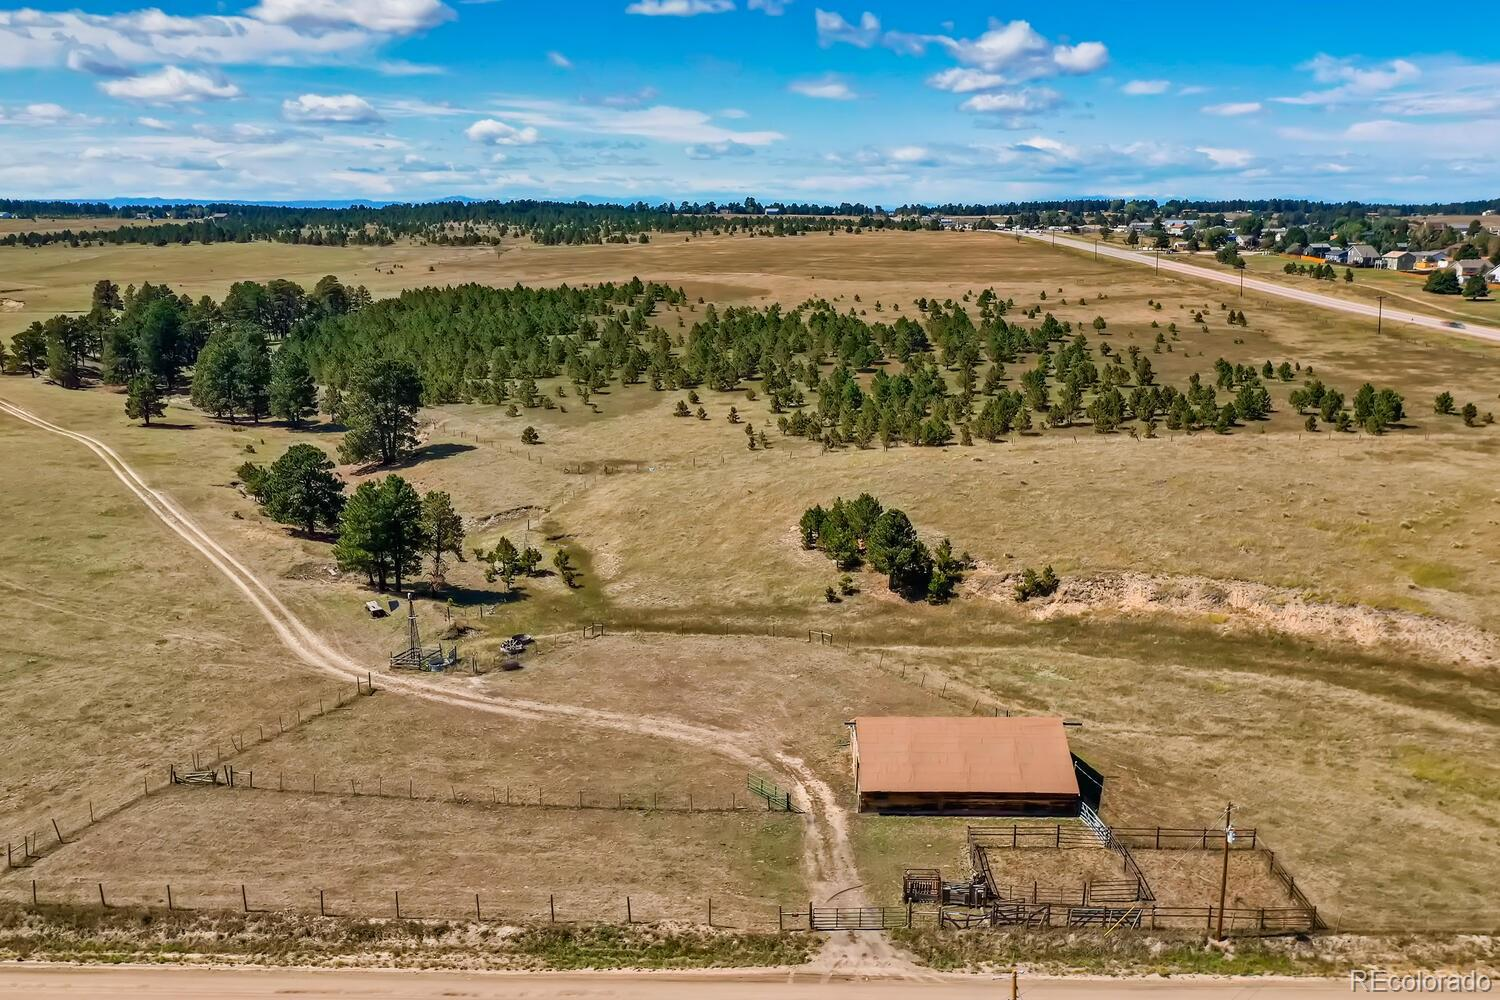 Take a look at this rare acreage near the town of Elizabeth filled with opportunity!  Whether your desire  is to build your dream ranch estate, equestrian center or maintain it as livestock grazing land - this agricultural property is for you.  The land has previously had horses and/or 10 pairs of cattle (10 cows & 10 calves) It is completely fenced and cross fenced with a hayfield that produces 150-200 bales per year (depending on the year), abundant tree grove for privacy from Hwy 86, and grazing area for livestock.  Not wanting to build a ranch estate?  The additional possibilities are endless being located on Highway 86 outside of Elizabeth in the Elbert County Economic Development Zone (EDZ) Overlay, providing the opportunity for commercial development.   (Please visit https://www.elbertcounty-co.gov/documentcenter/view/760 for more information as well as visit Elbert County Building Department for further research).  You will also find that this property is a short distance to the Town of Elizabeth (less than 5 minutes to the heart), 7 minutes to Kiowa, less than 30 minutes to Parker or Castle Rock and approximately 1 hour to Denver International Airport and downtown Denver.